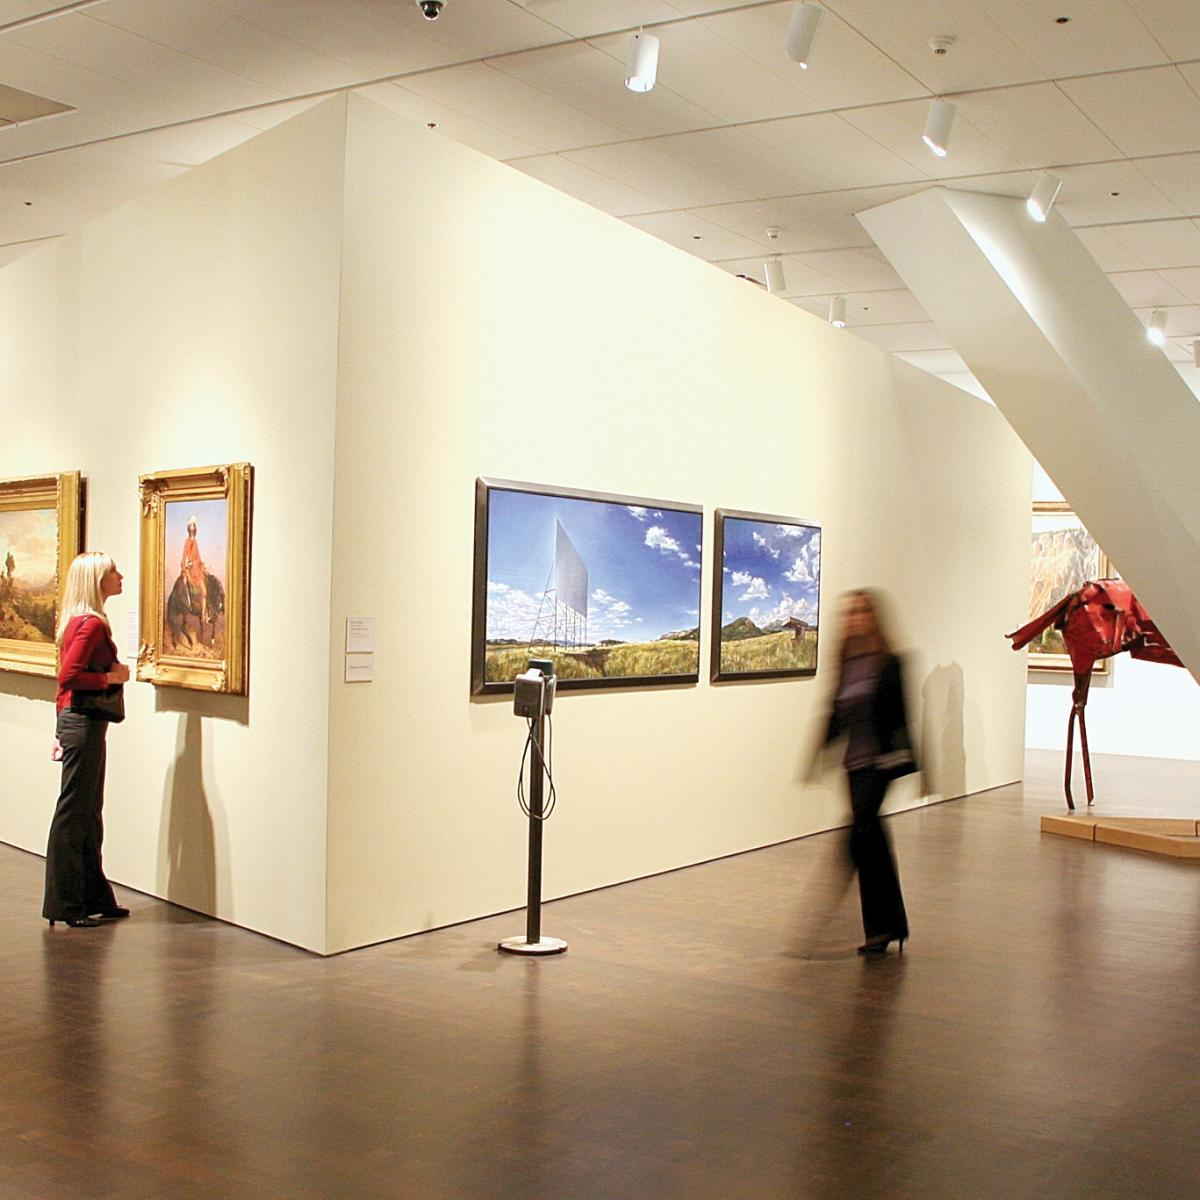 A gallery at the Denver Art Museum